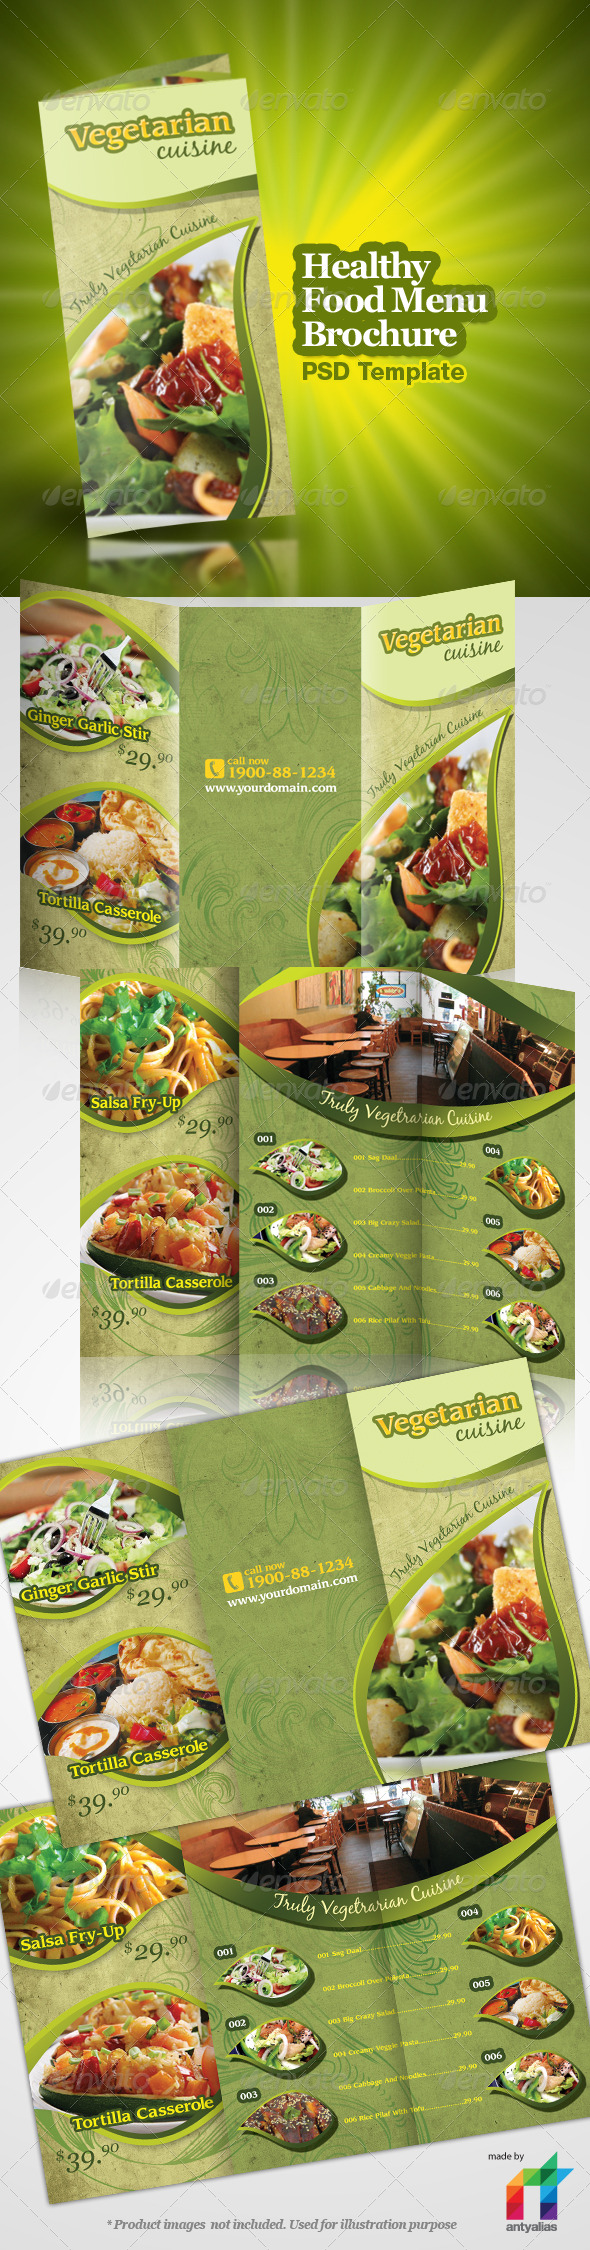 sandwich shop menu template - healthy food menu brochure by antyalias on deviantart